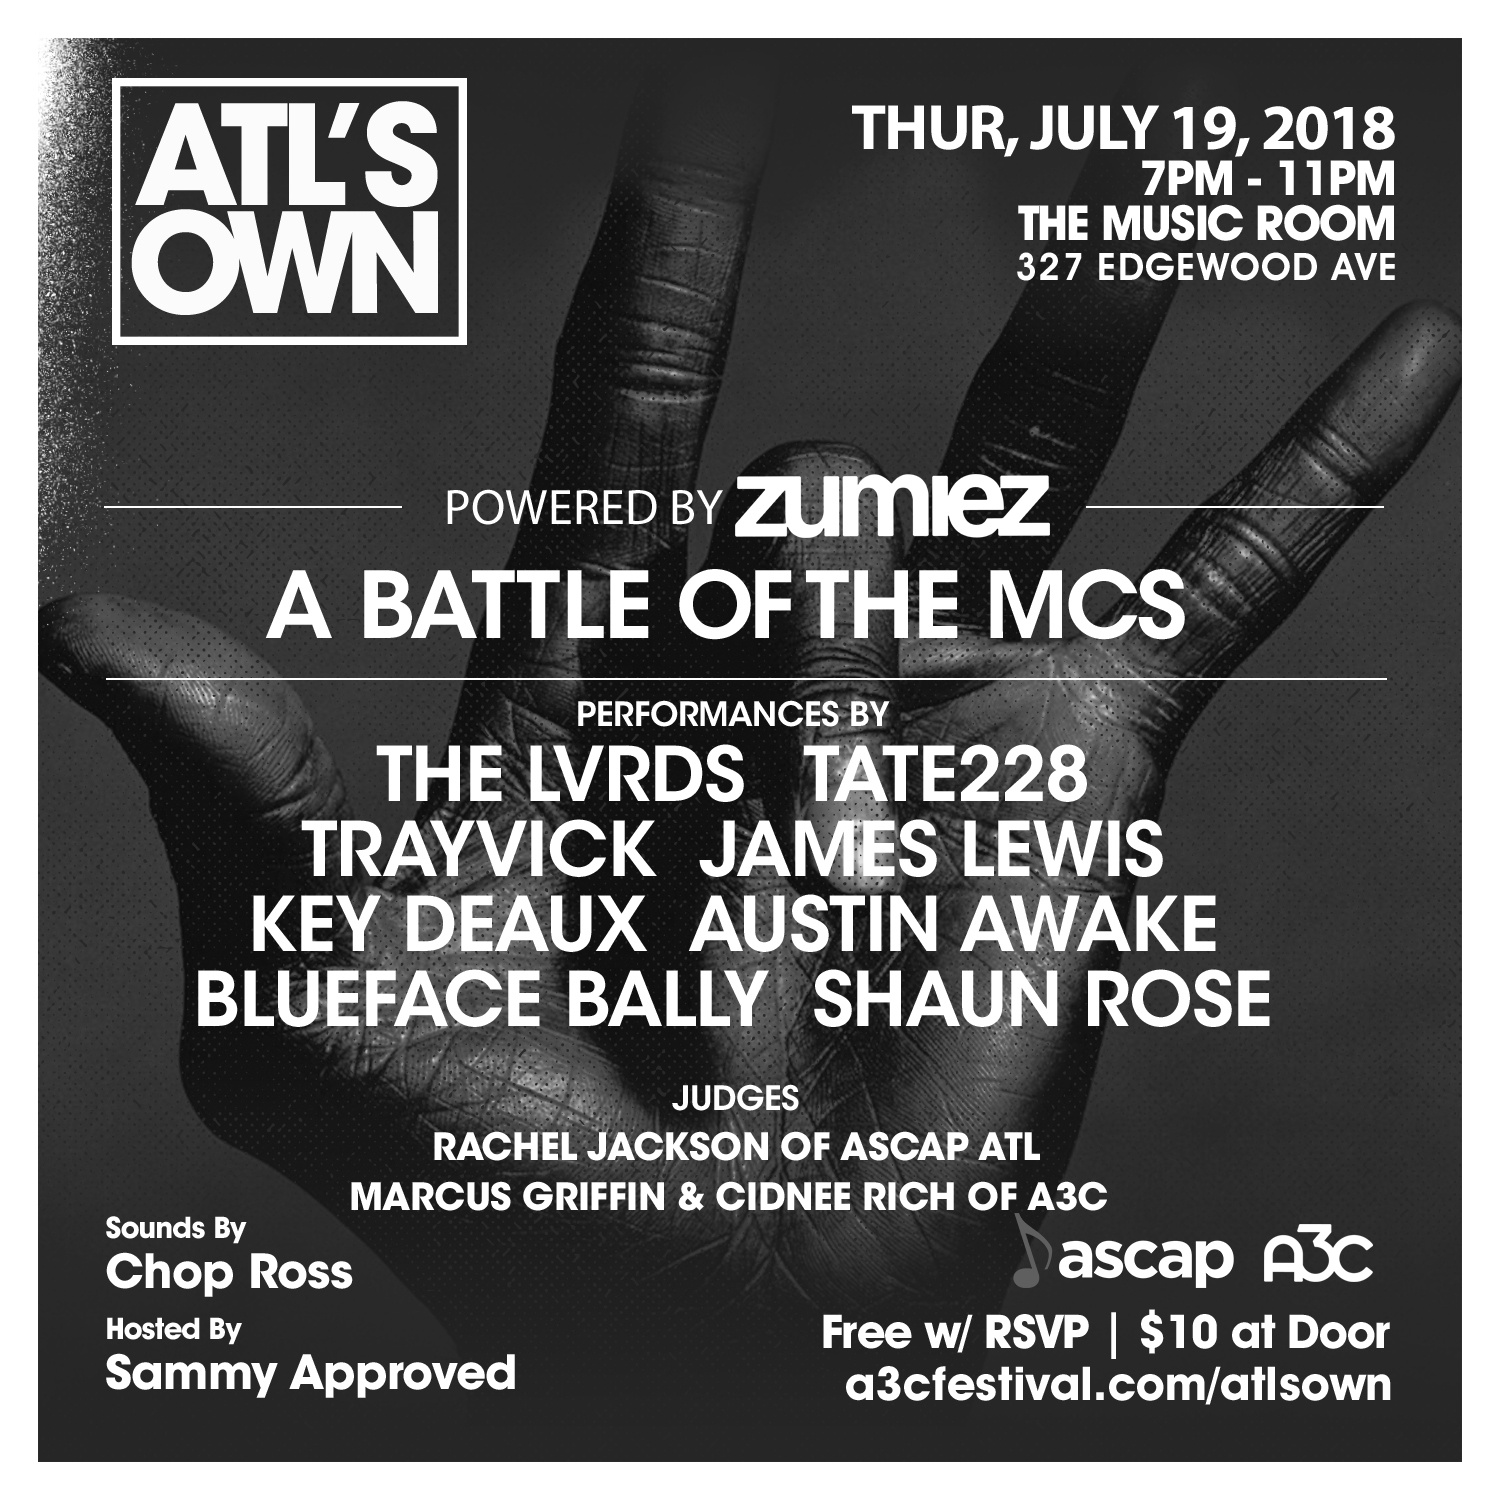 Battle of the MCs - ATLs Own (5)